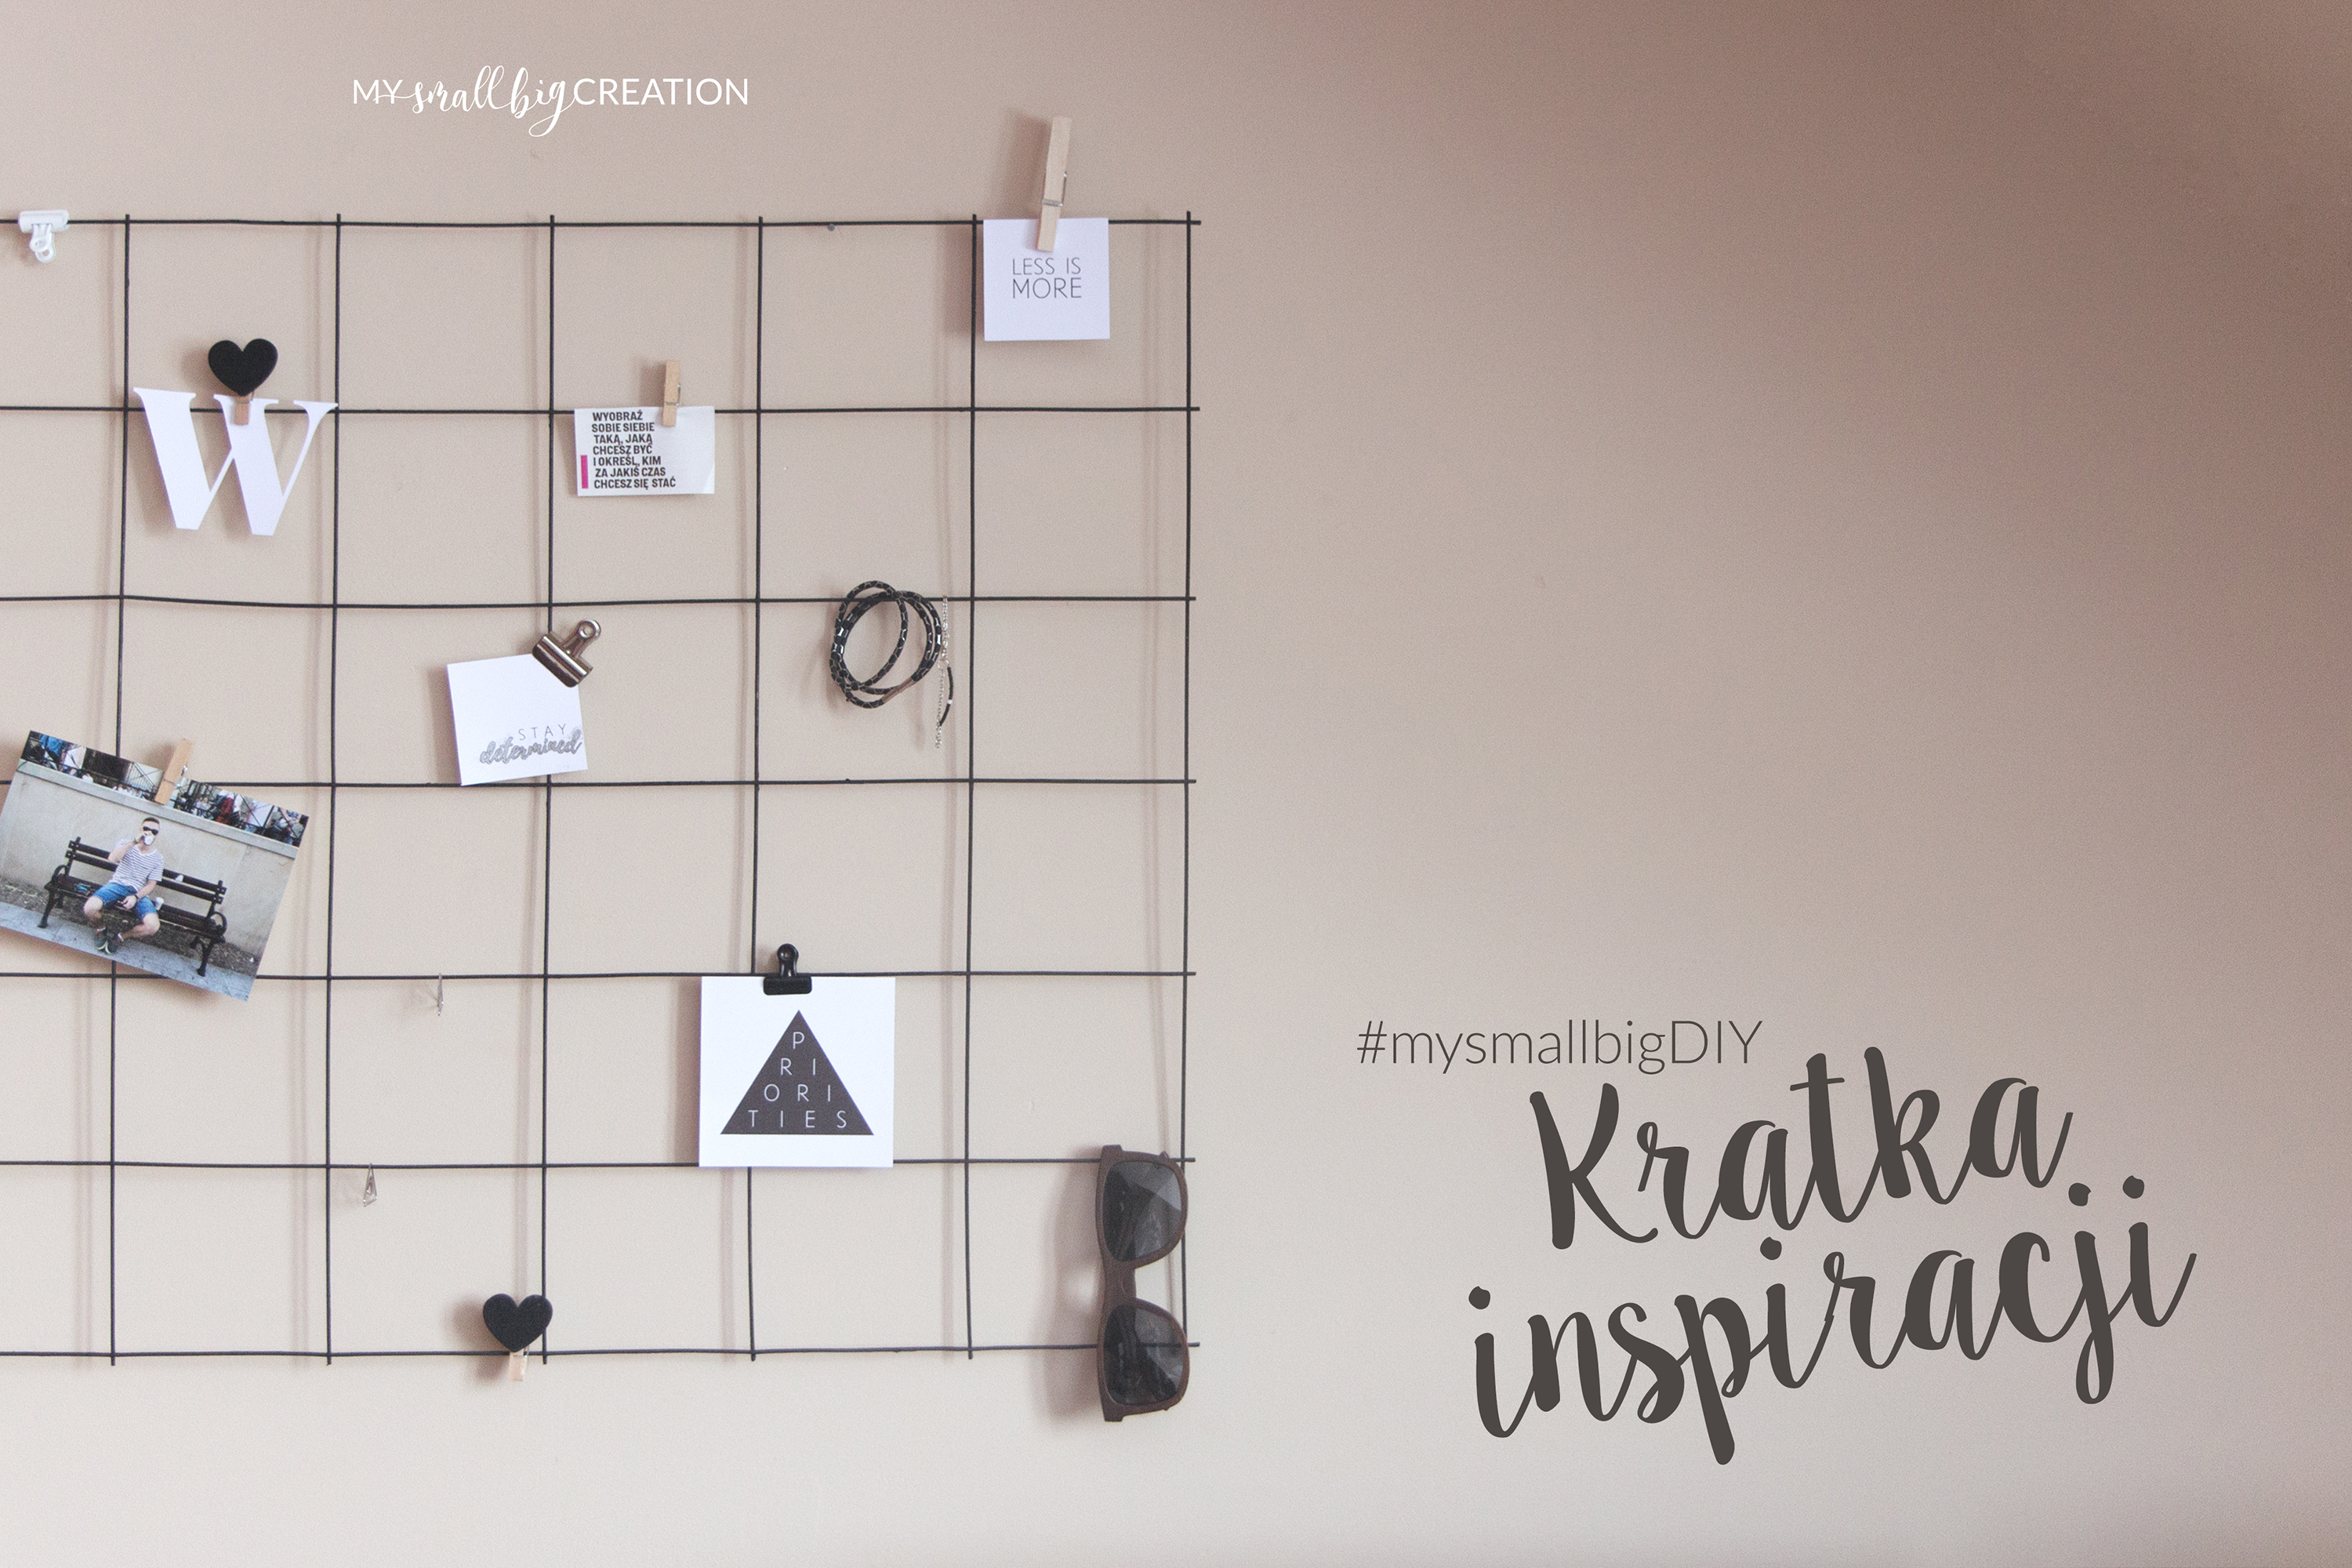 #mysmallbigDIY - Kratka inspiracji | My small big creation